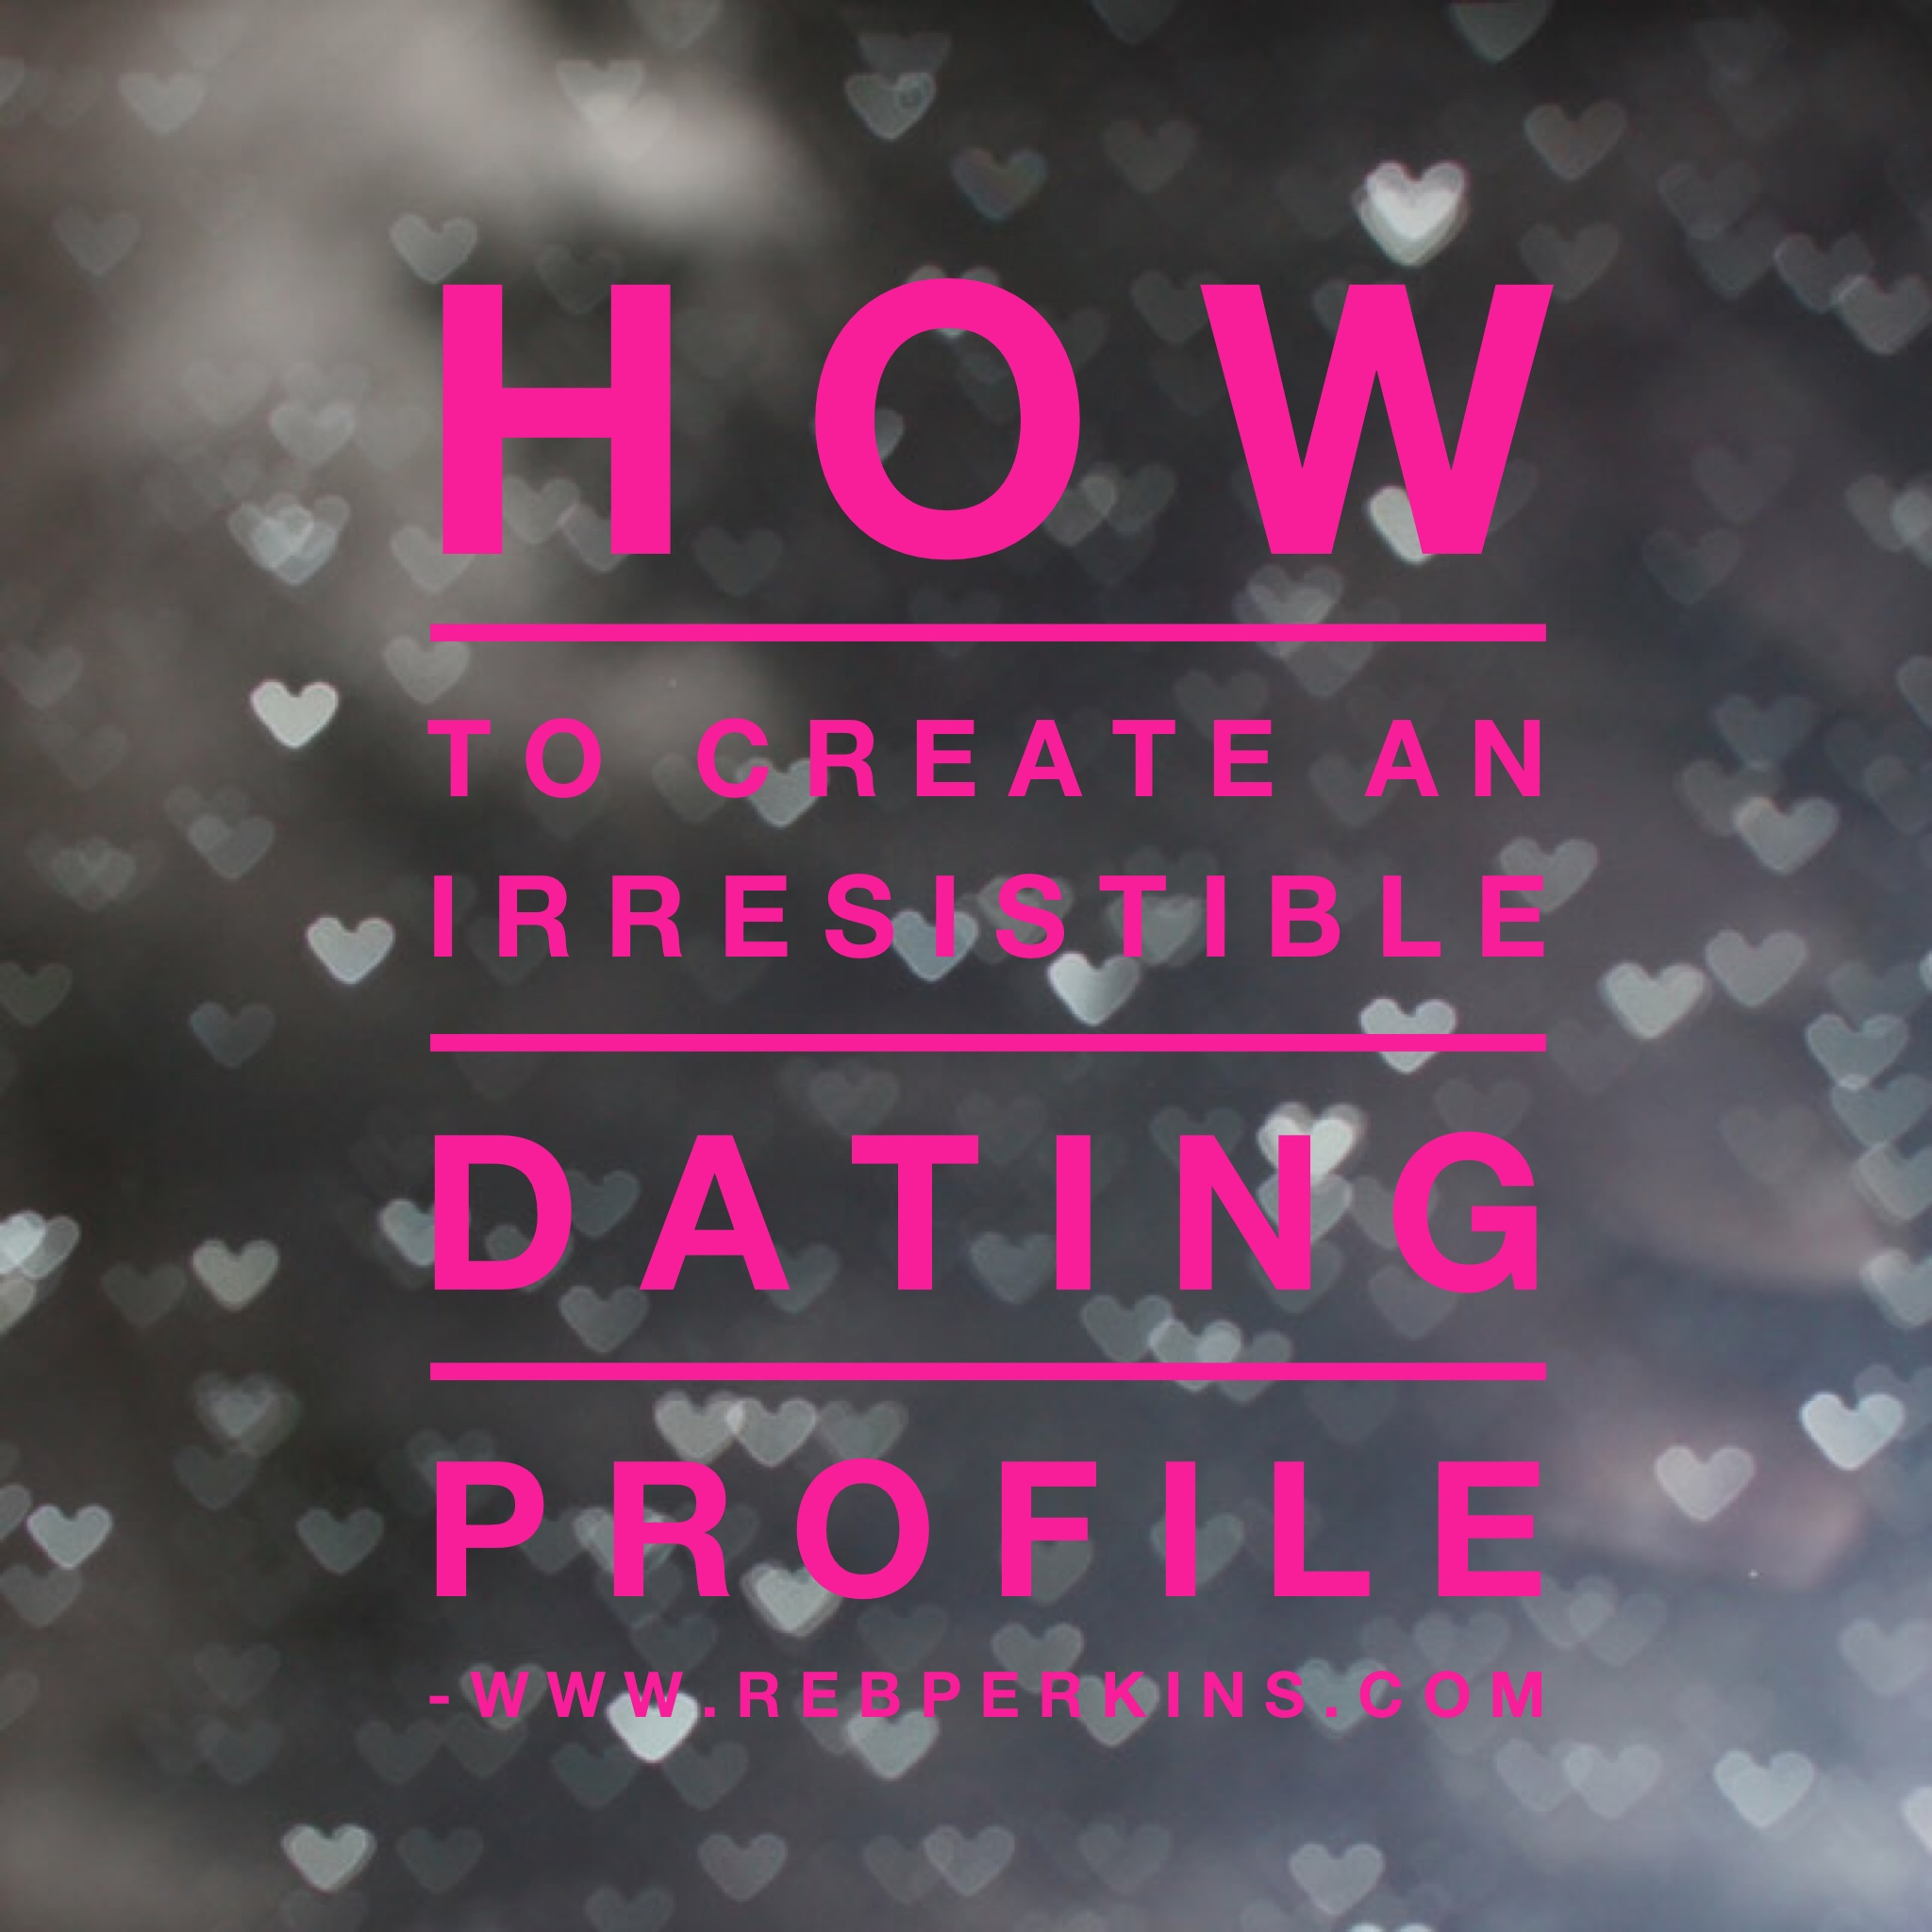 How to find profiles on dating sites